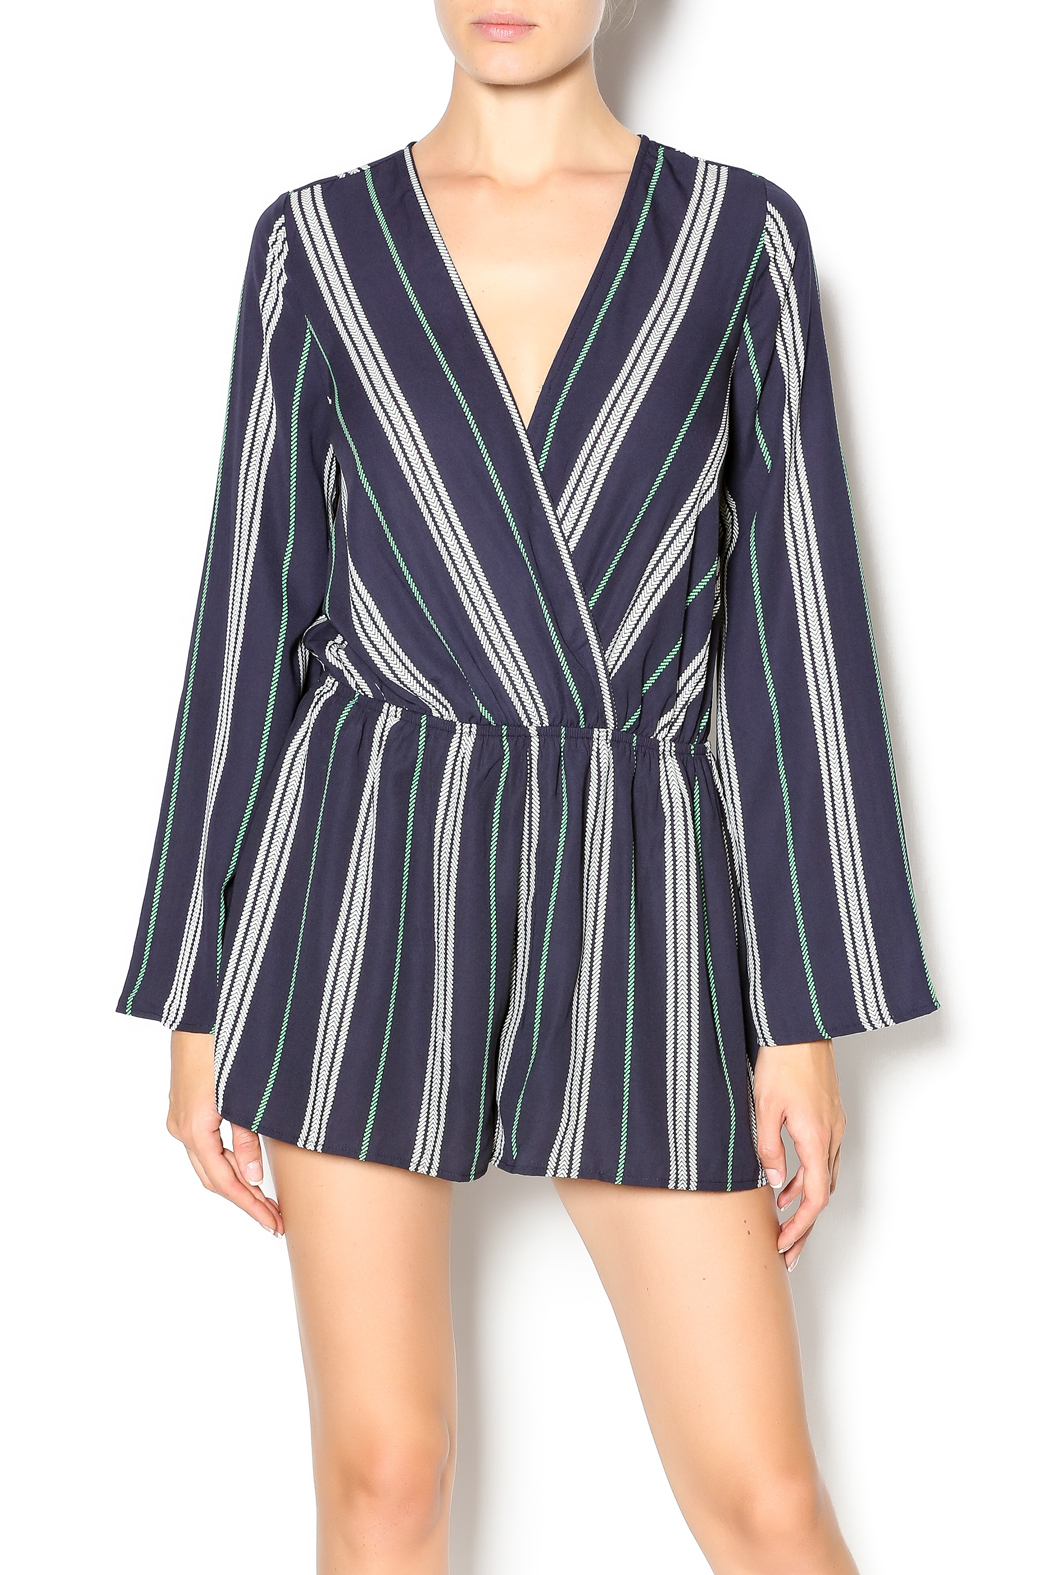 Illa Illa Navy Striped Romper - Main Image